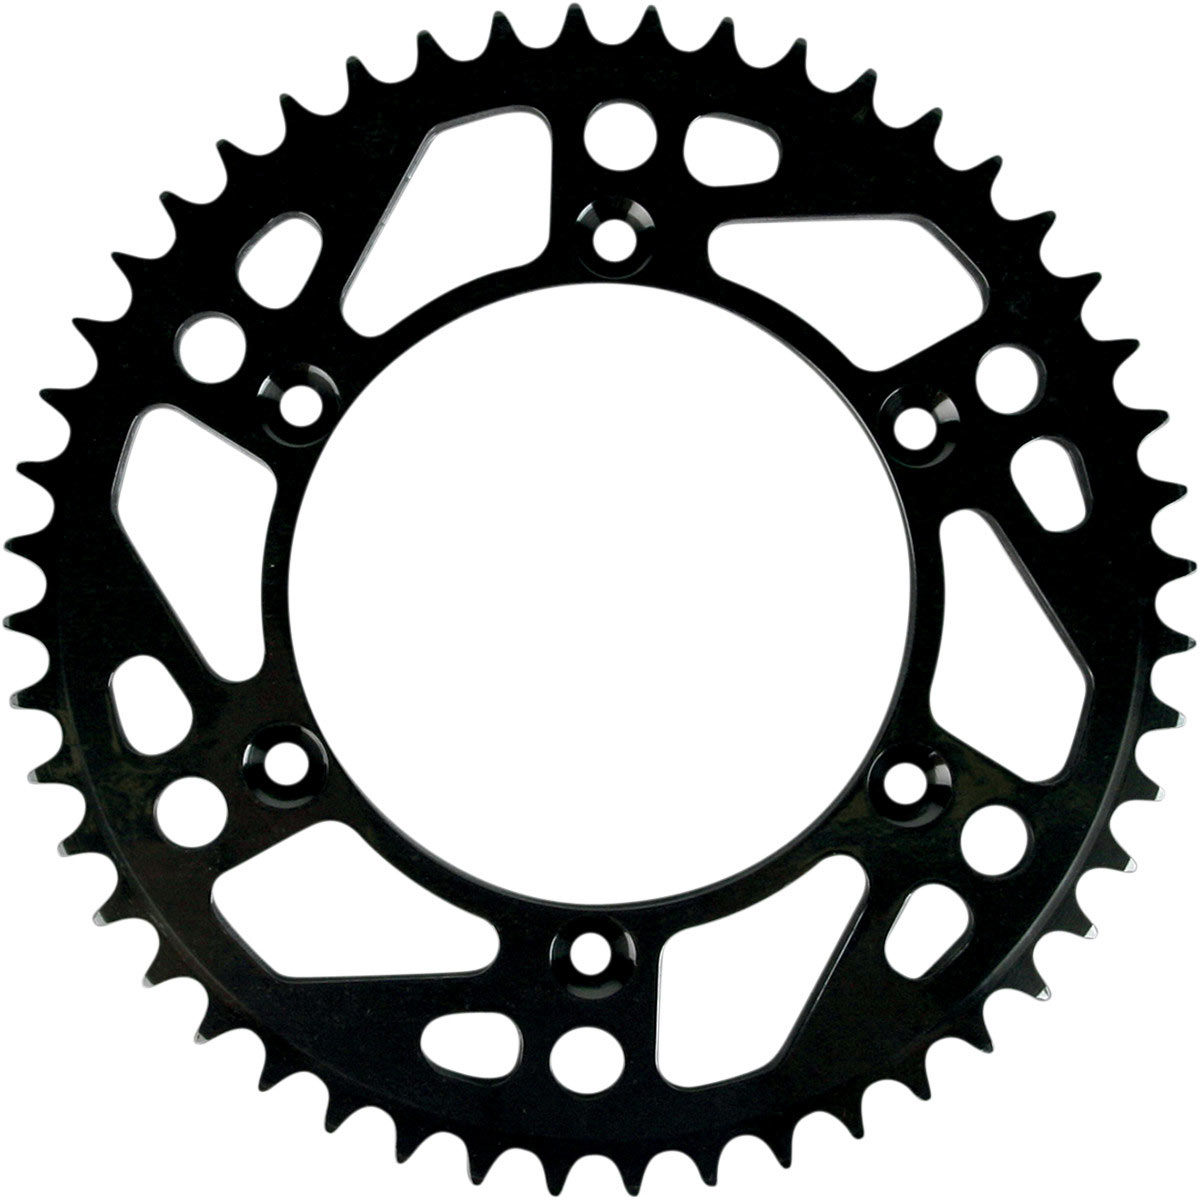 Bmx sprocket clipart clip freeuse library Free Motorcycle Sprockets Cliparts, Download Free Clip Art, Free ... clip freeuse library